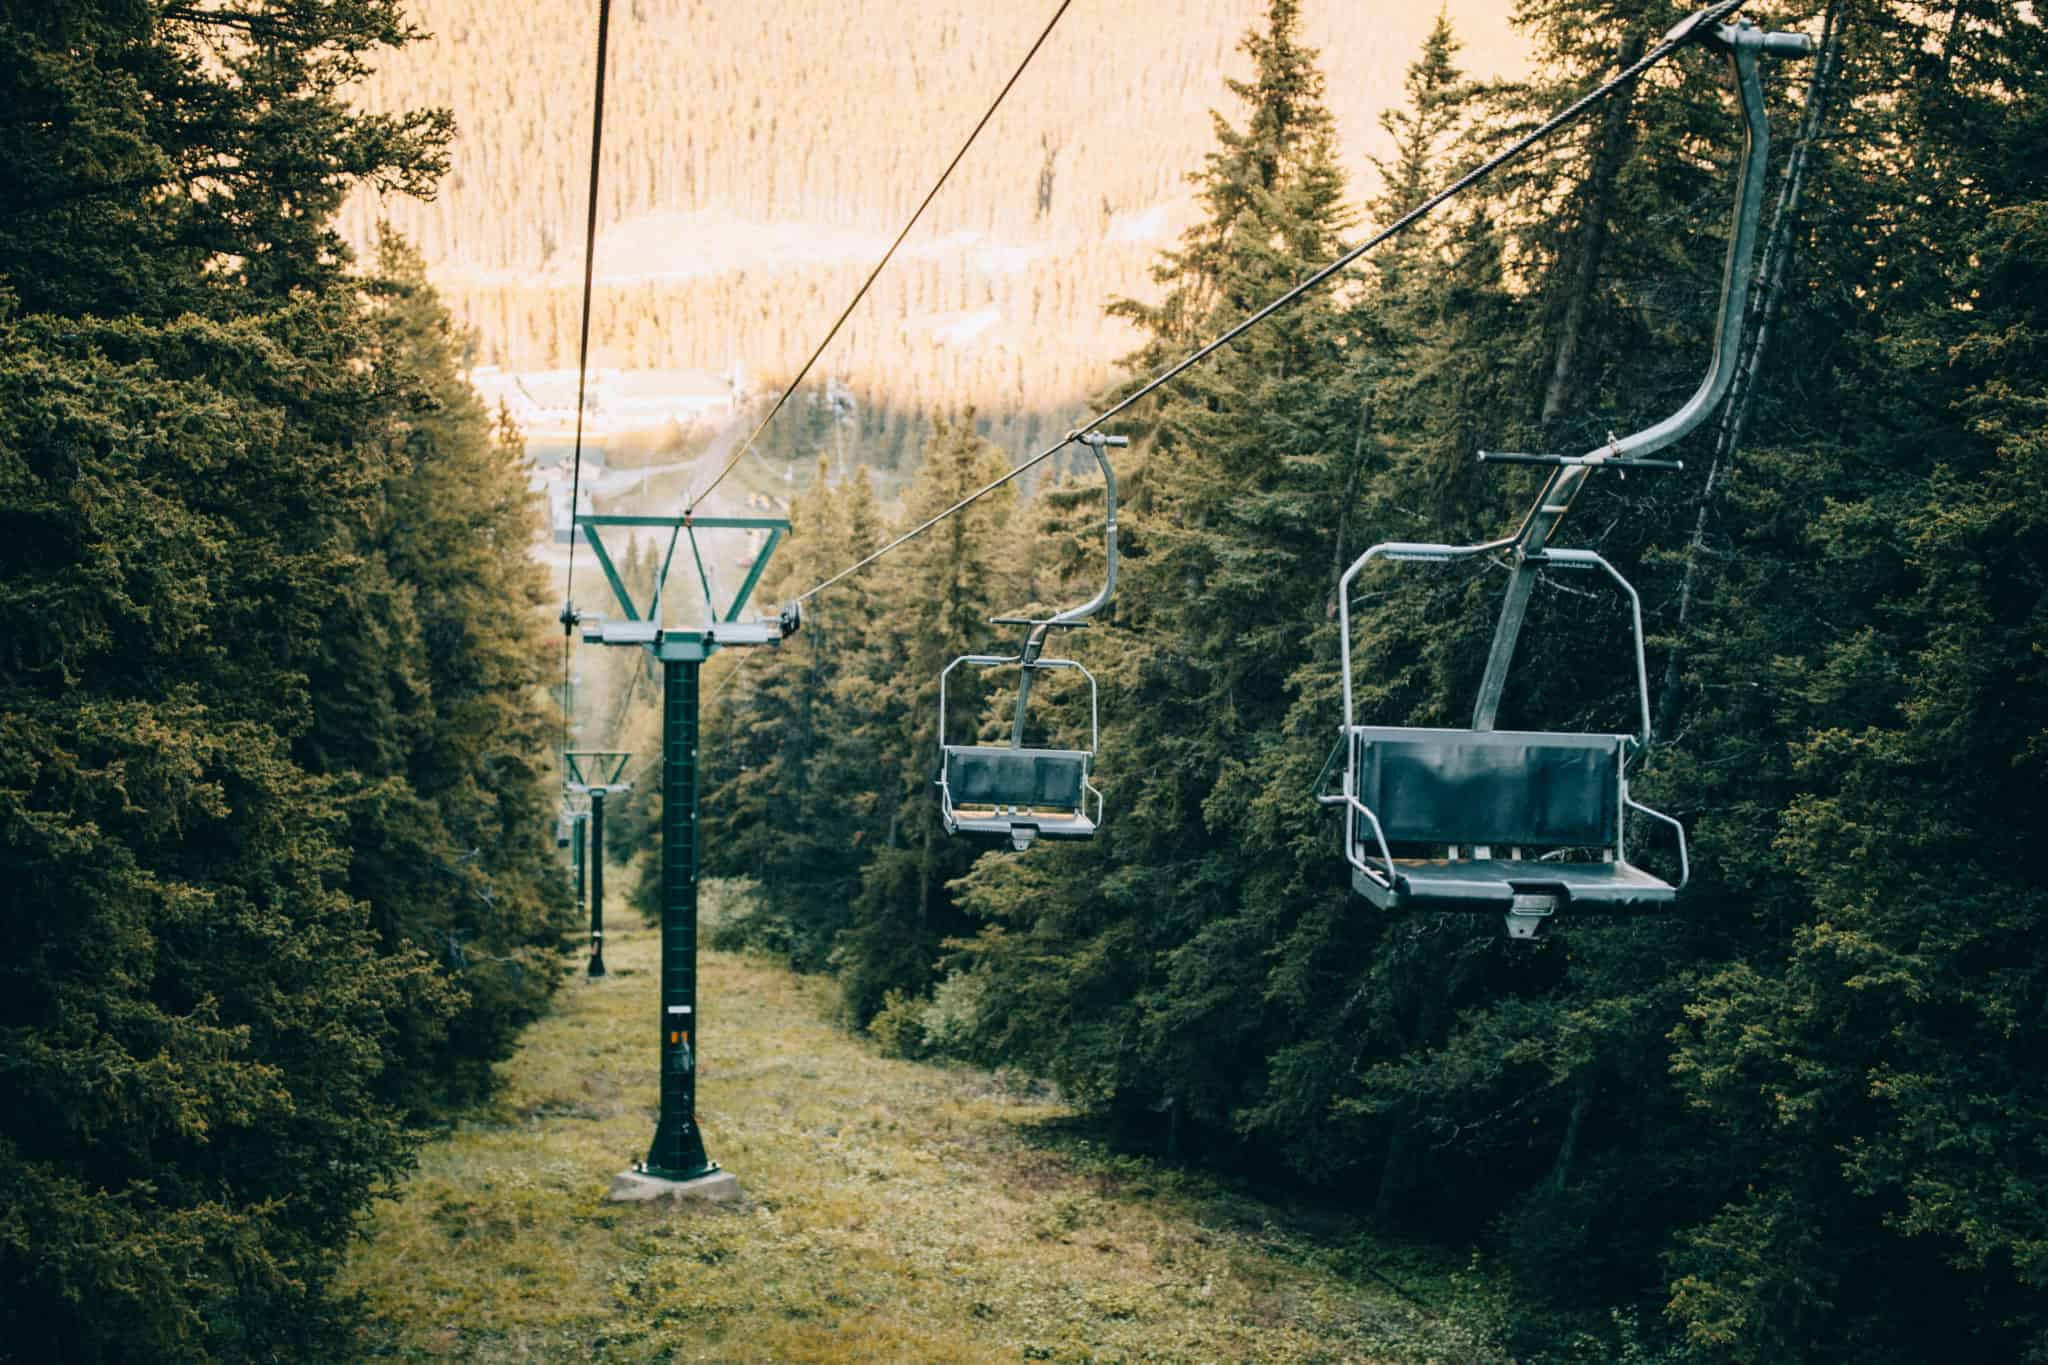 Things To Do In Banff - Mount Norquay Chairlift